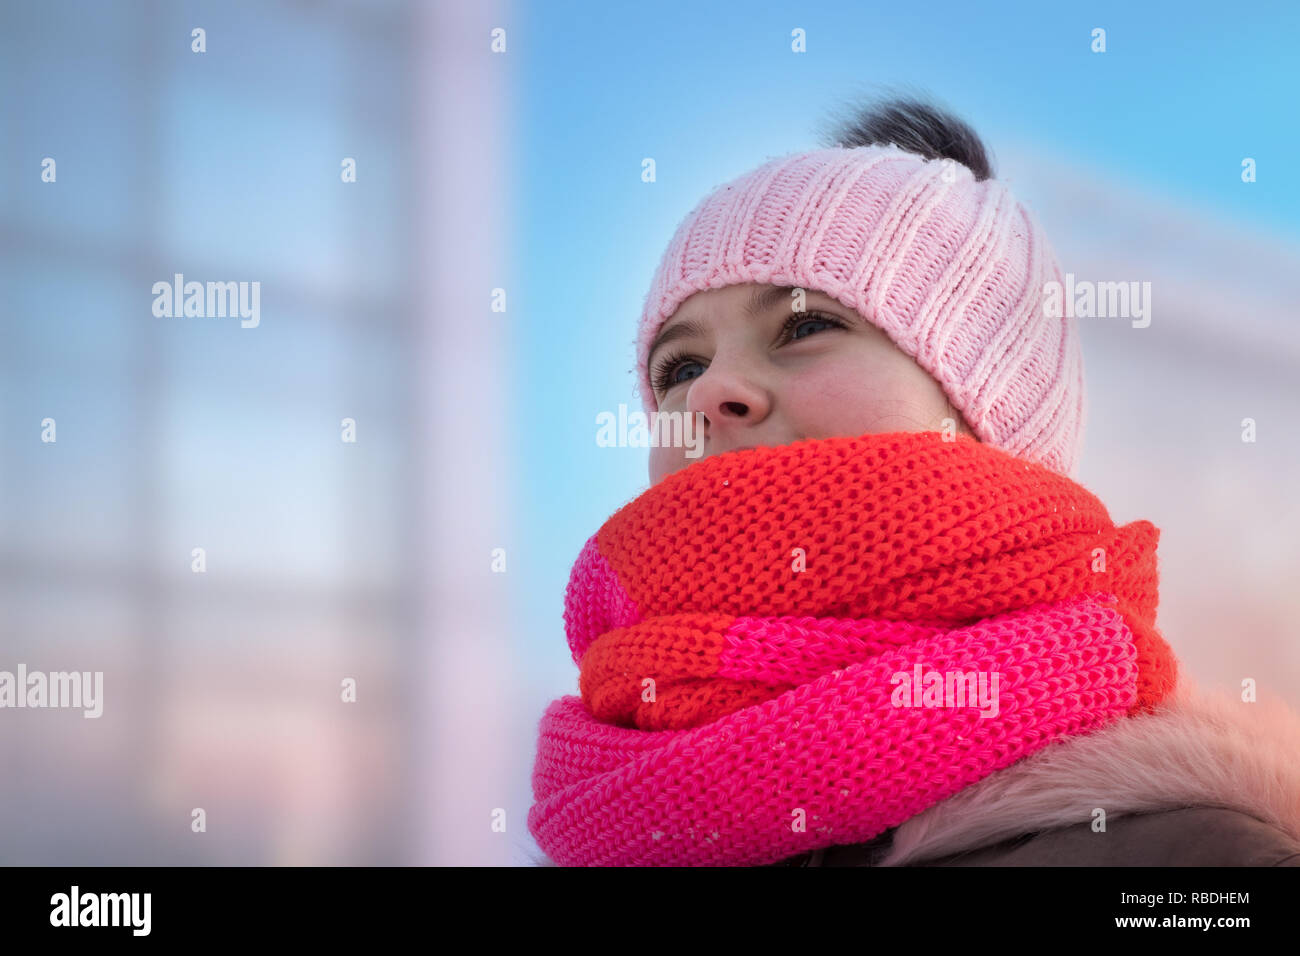 girl in a knitted hat with a bub and a fluffy hood looks ahead Stock Photo